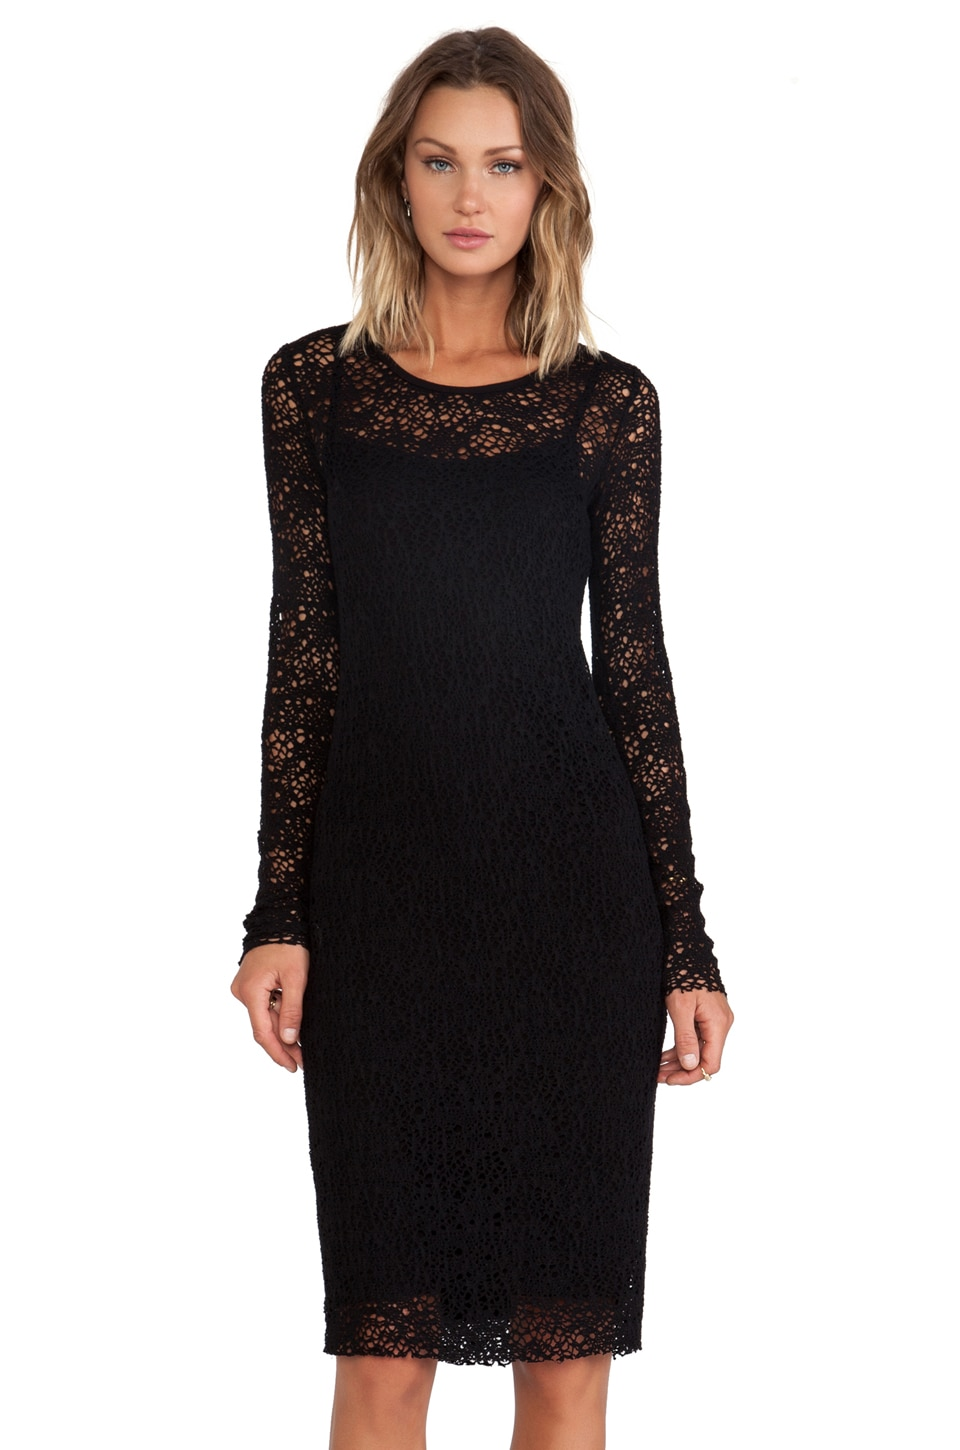 Bailey 44 Snow Crystal Dress in Black